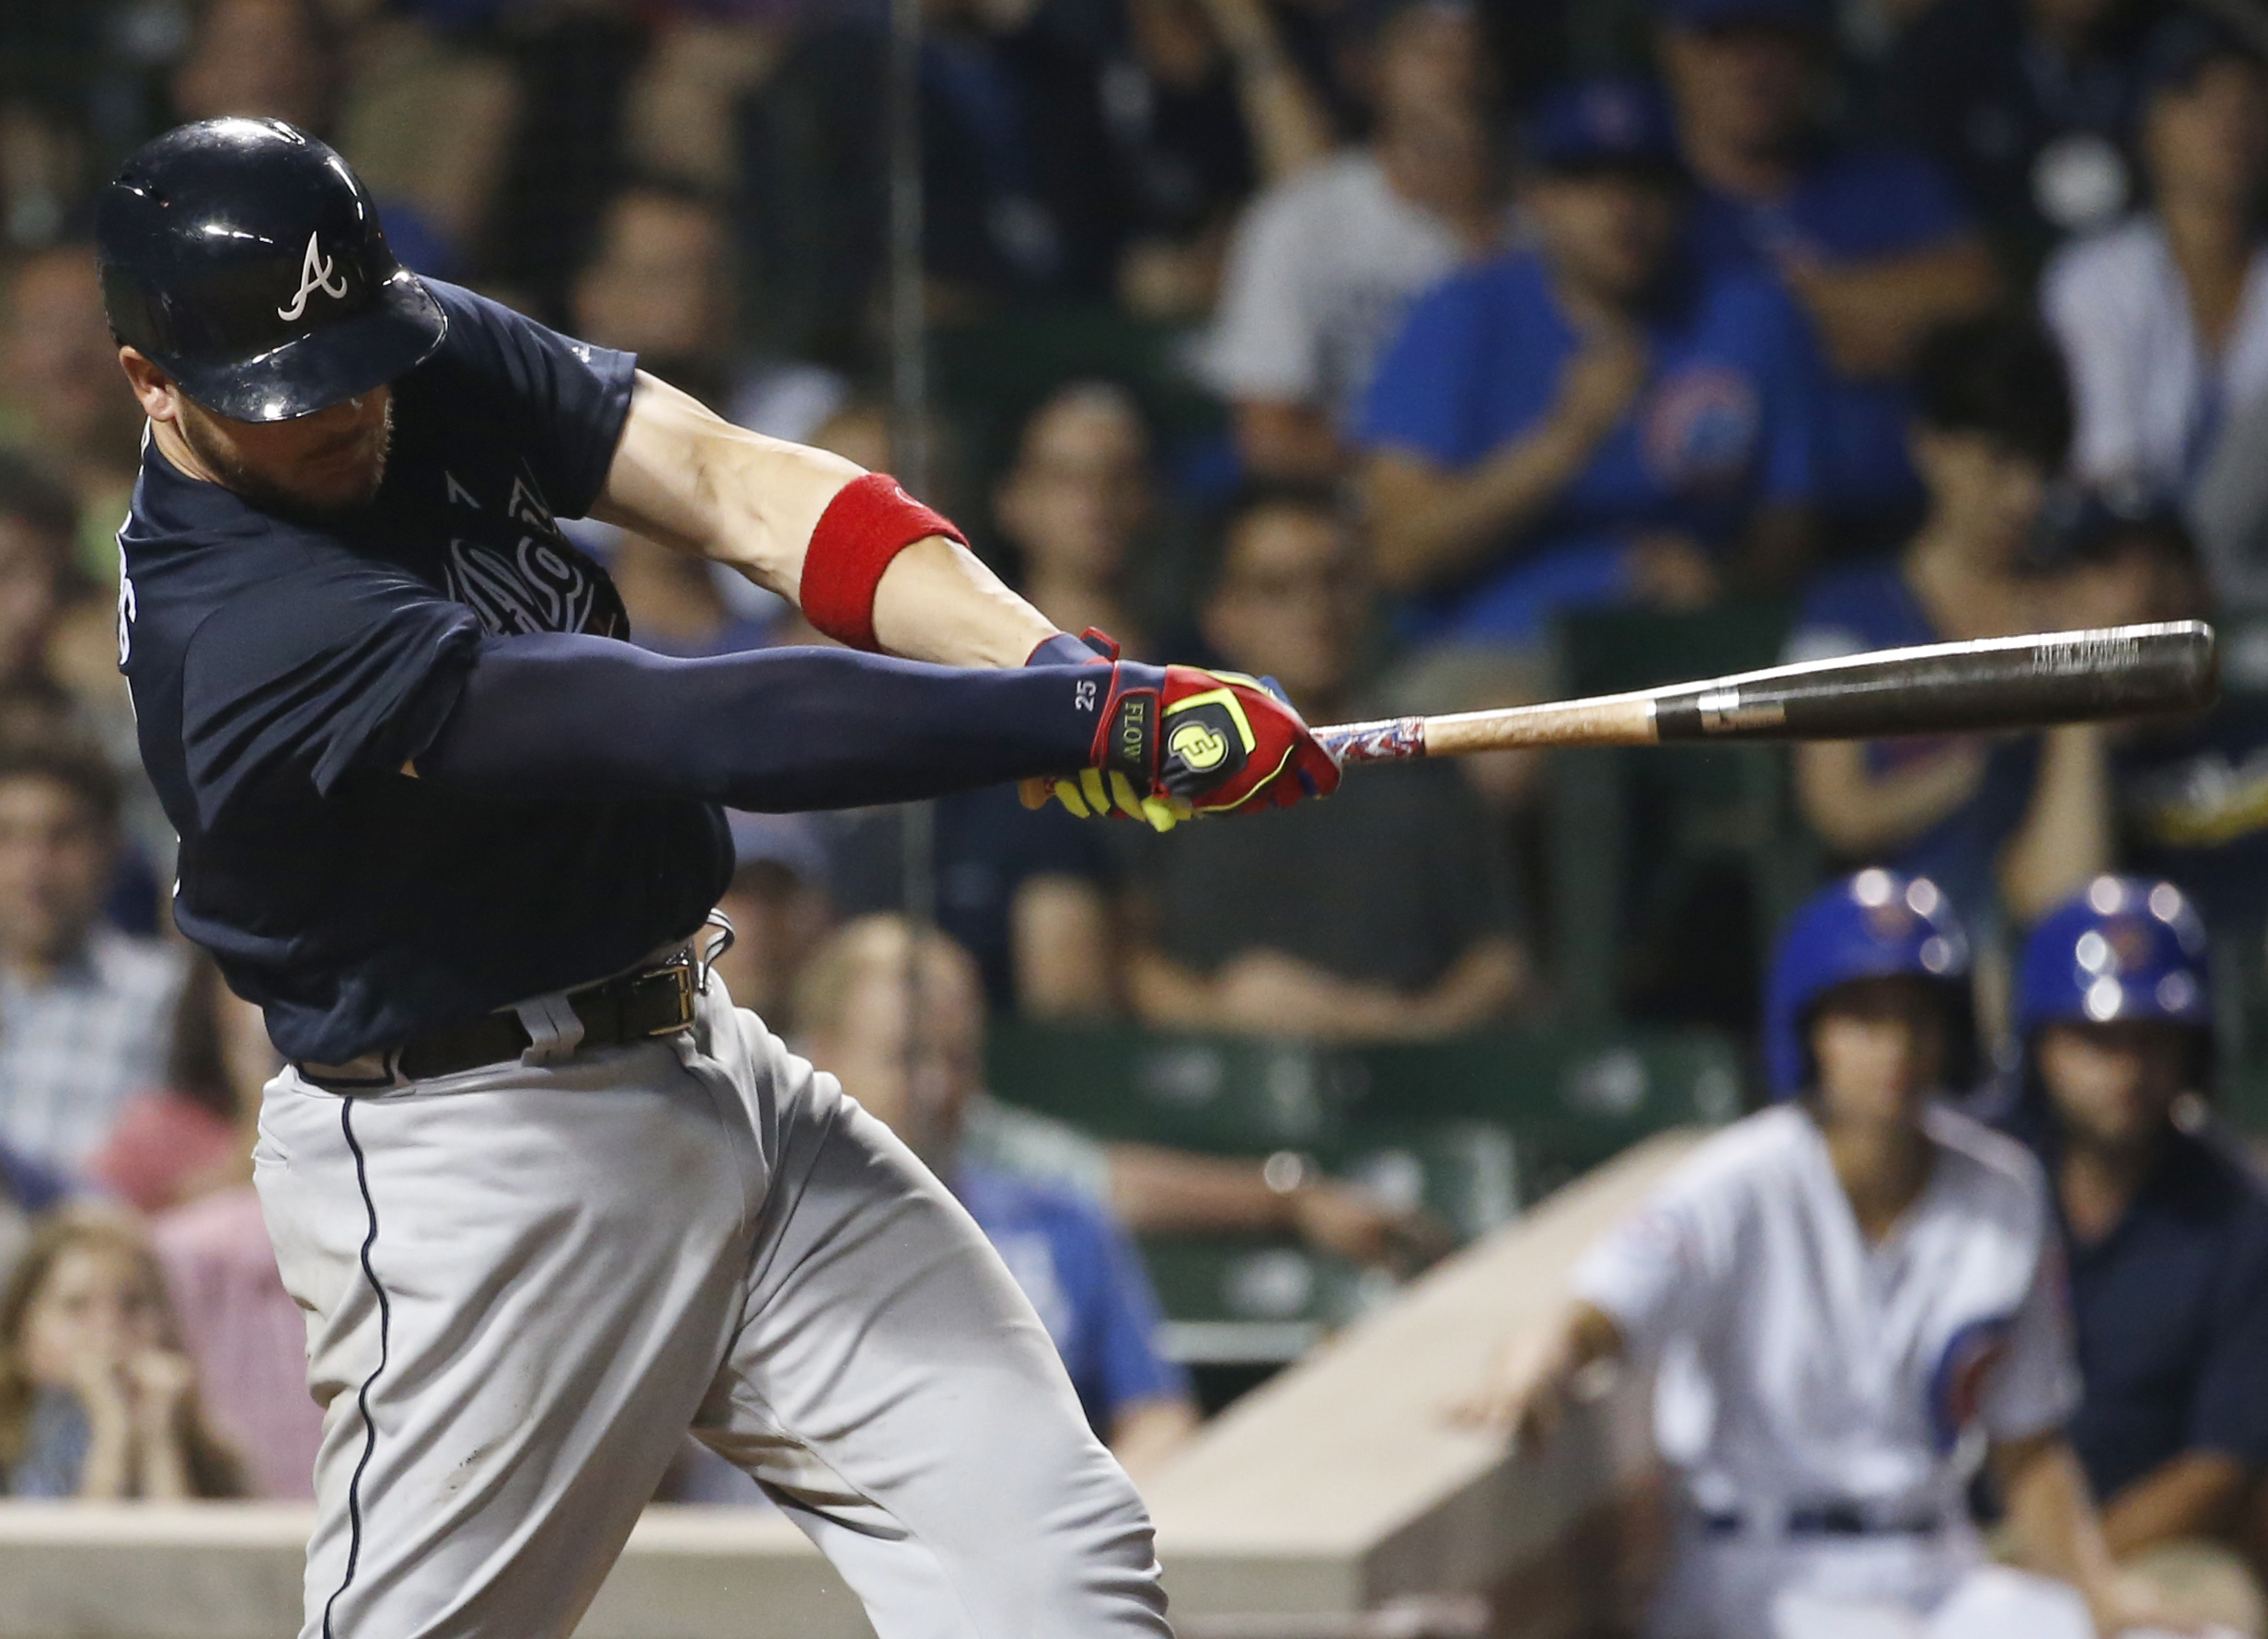 Atlanta Braves' Tyler Flowers swings on an RBI single against the Chicago Cubs during the 11th inning of a baseball game early Friday, July 8, 2016, in Chicago. (AP Photo/Nam Y. Huh)